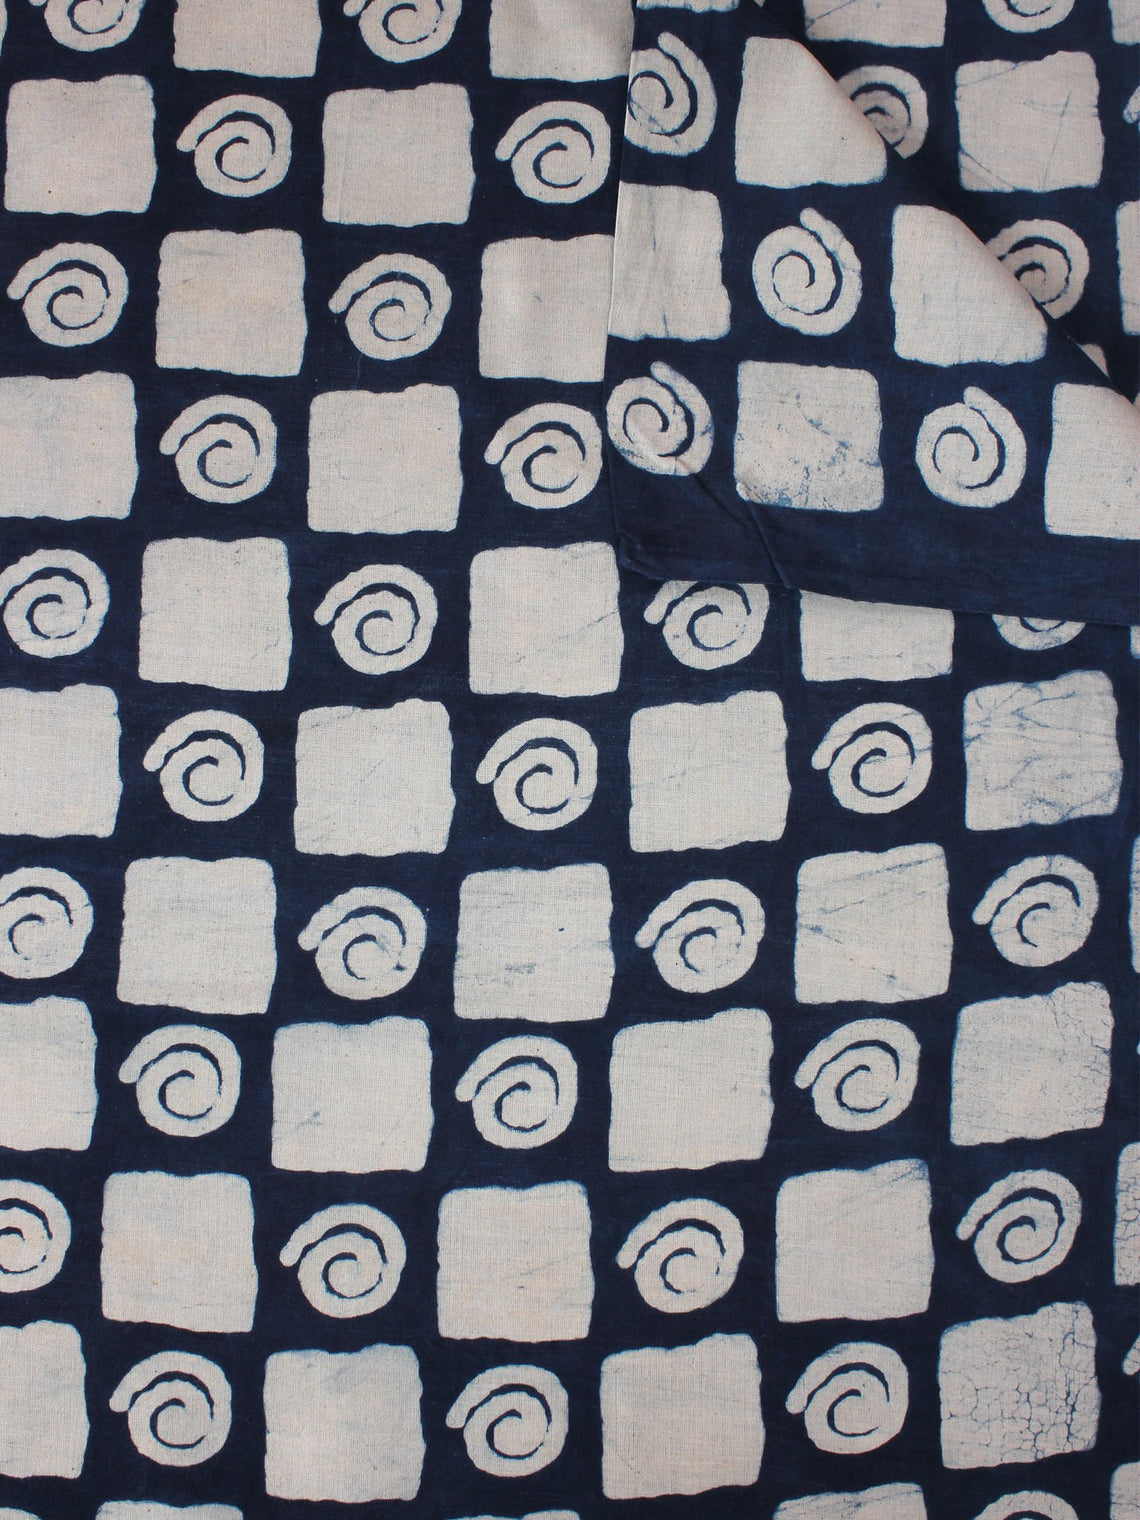 Indigo Ivory Natural Dyed Hand Block Printed Cotton Fabric Per Meter - F0916078